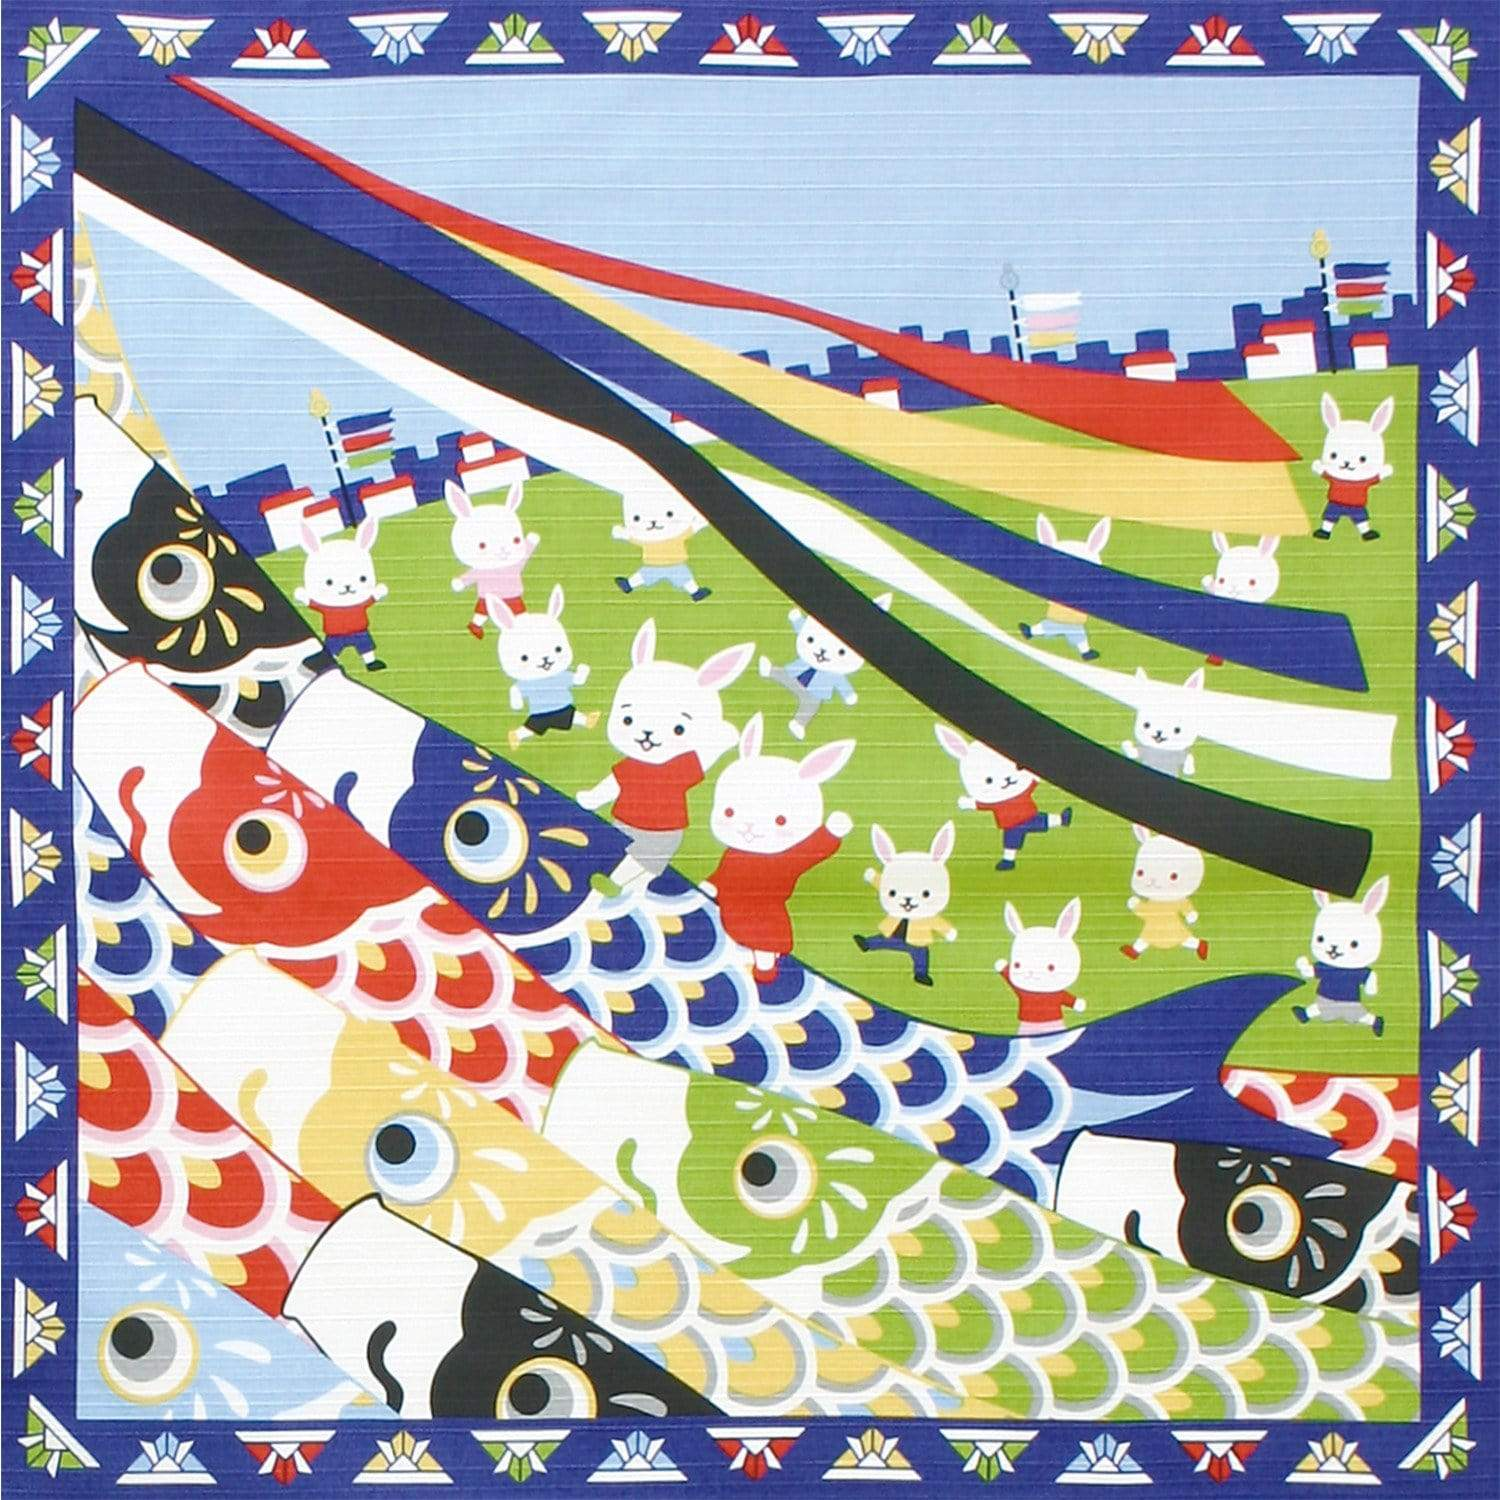 Maeda Senko Cotton Furoshiki Bento Lunch Cloth Day for Children Furoshikis